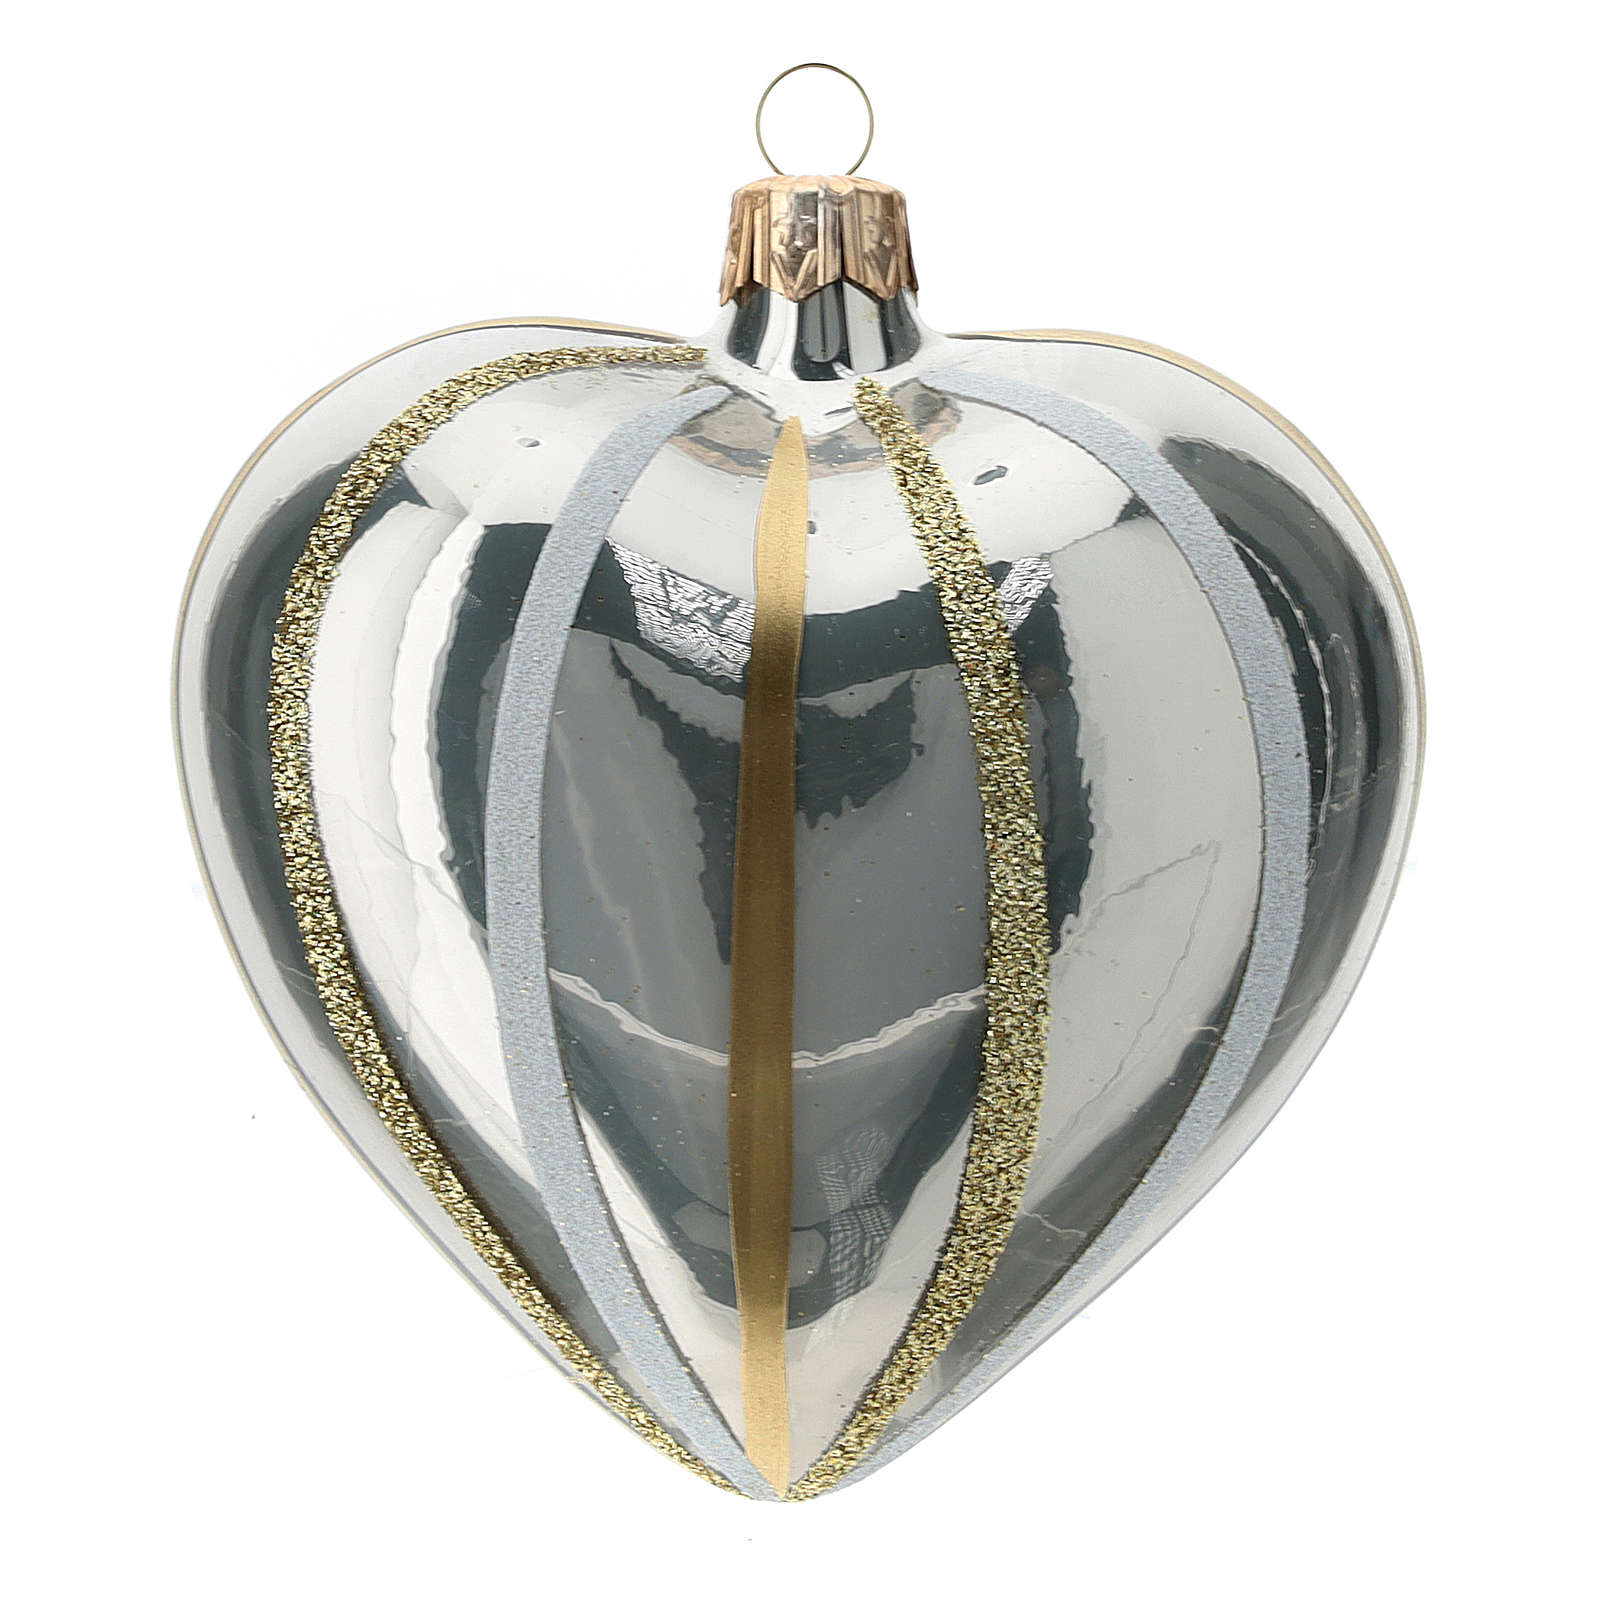 Heart Shaped Bauble in silver blown glass with stripes 100mm 4